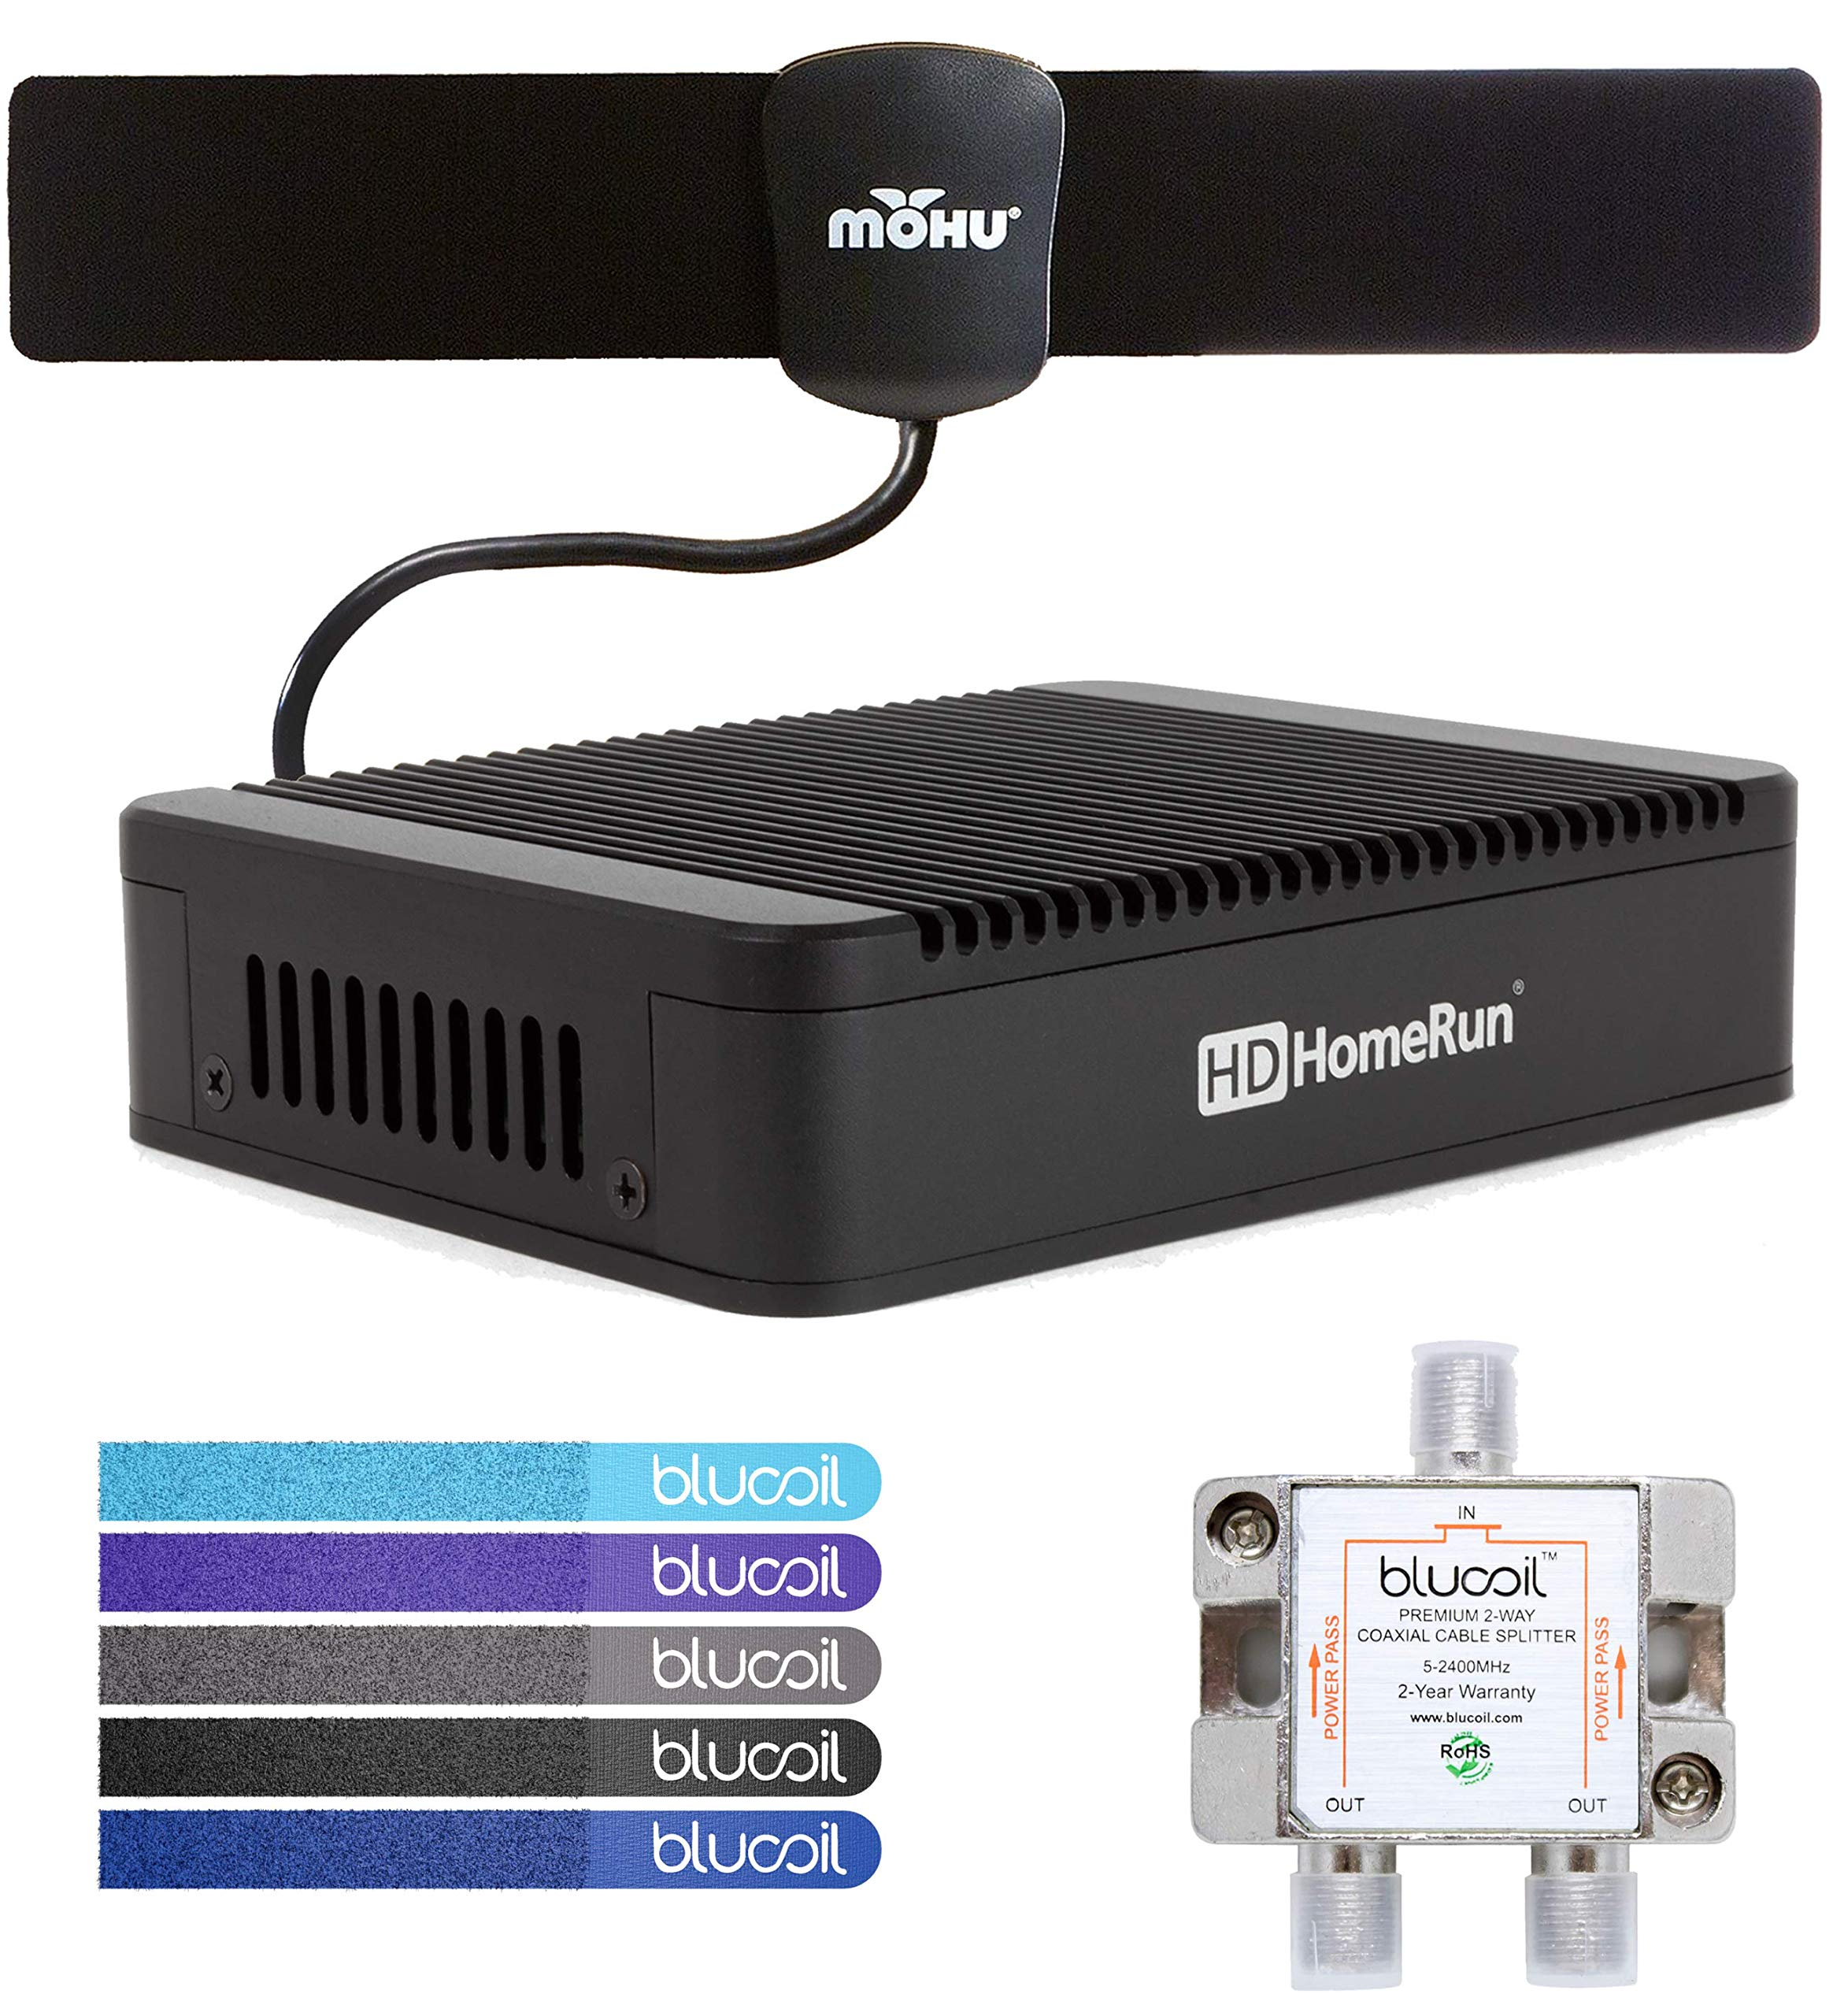 SiliconDust HDHomeRun Extend HDTC-2US-M Dual Tuner with H.264 Transcoder Bundle with Mohu 25 Mile Indoor HDTV Antenna, Blucoil 2-Way TV Coaxial Cable Splitter and 5-Pack of Reusable Cable Ties by Blucoil